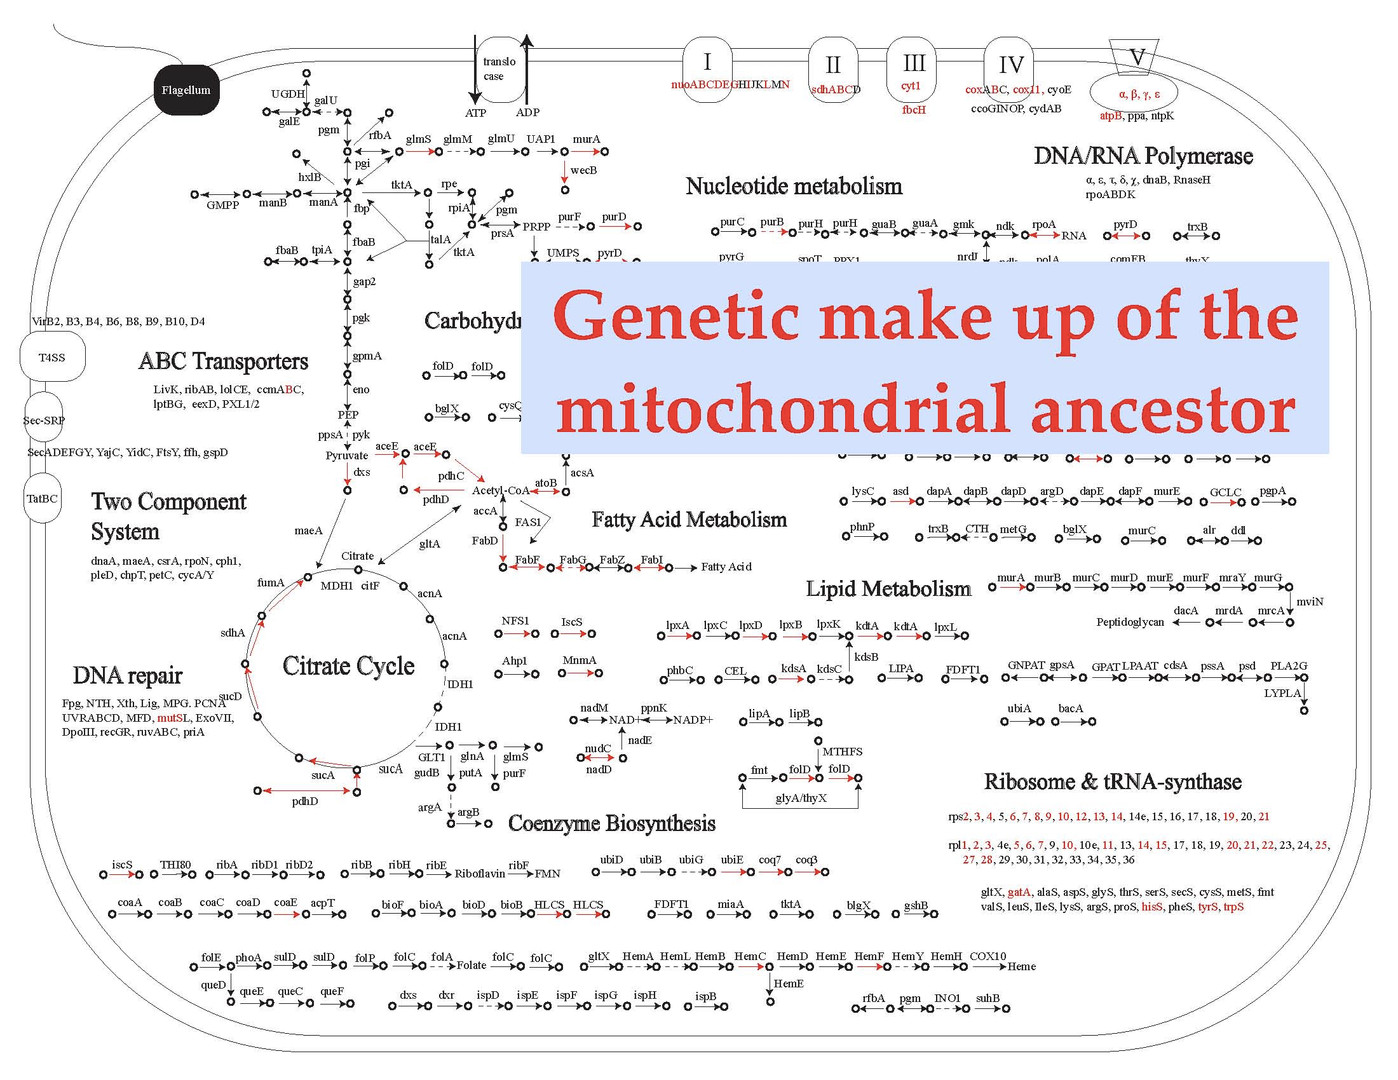 Phylogenomic Reconstruction Indicates Mitochondrial Ancestor Was an Energy Parasite